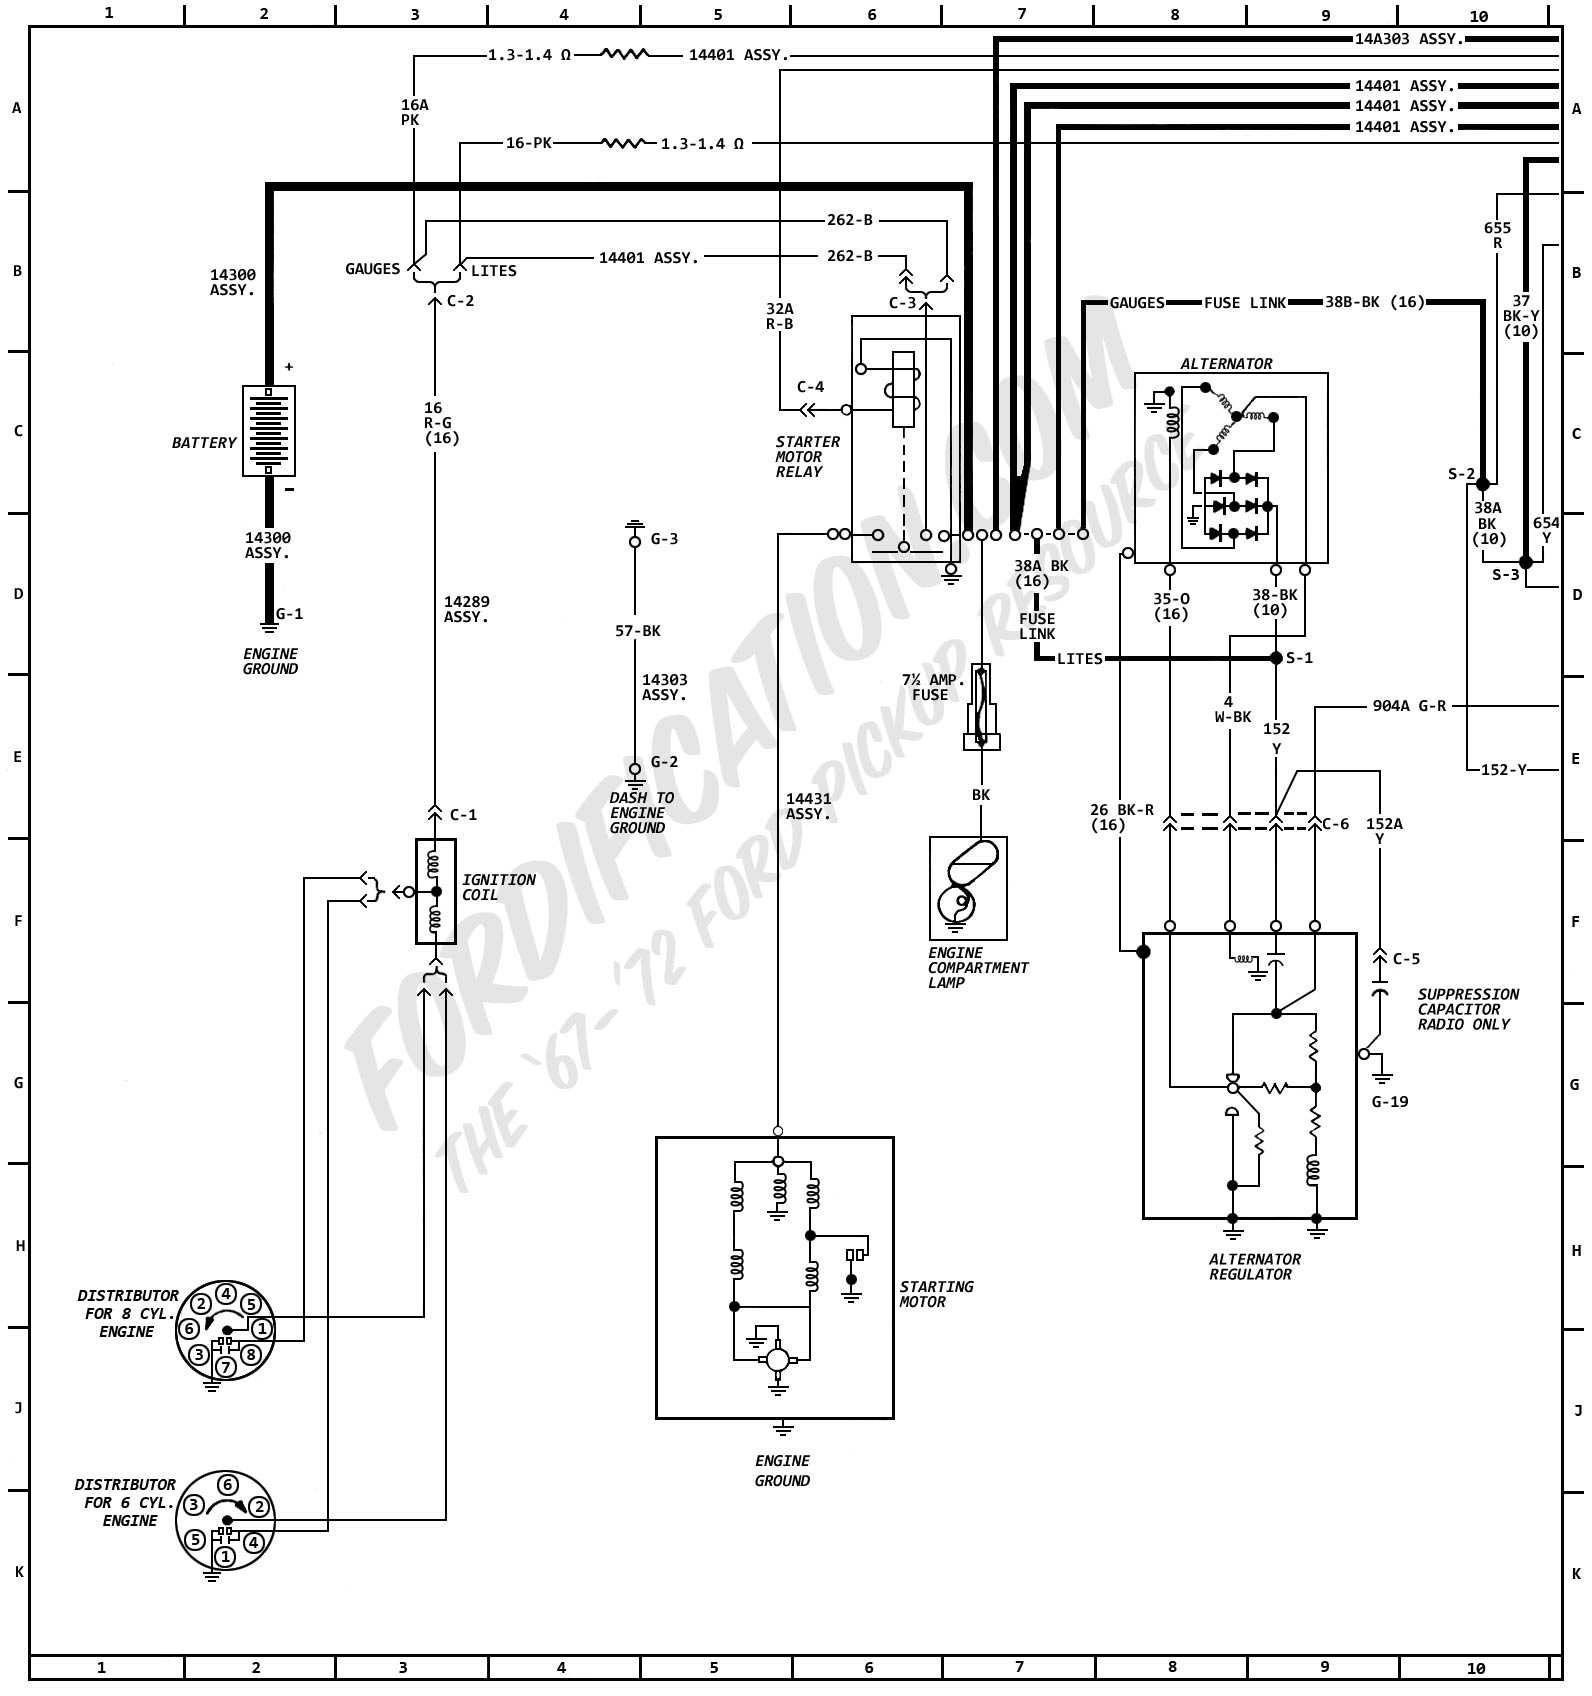 1985 ford f 150 wiring diagram mx 2752  bronco ii ignition wiring schematics download diagram  bronco ii ignition wiring schematics